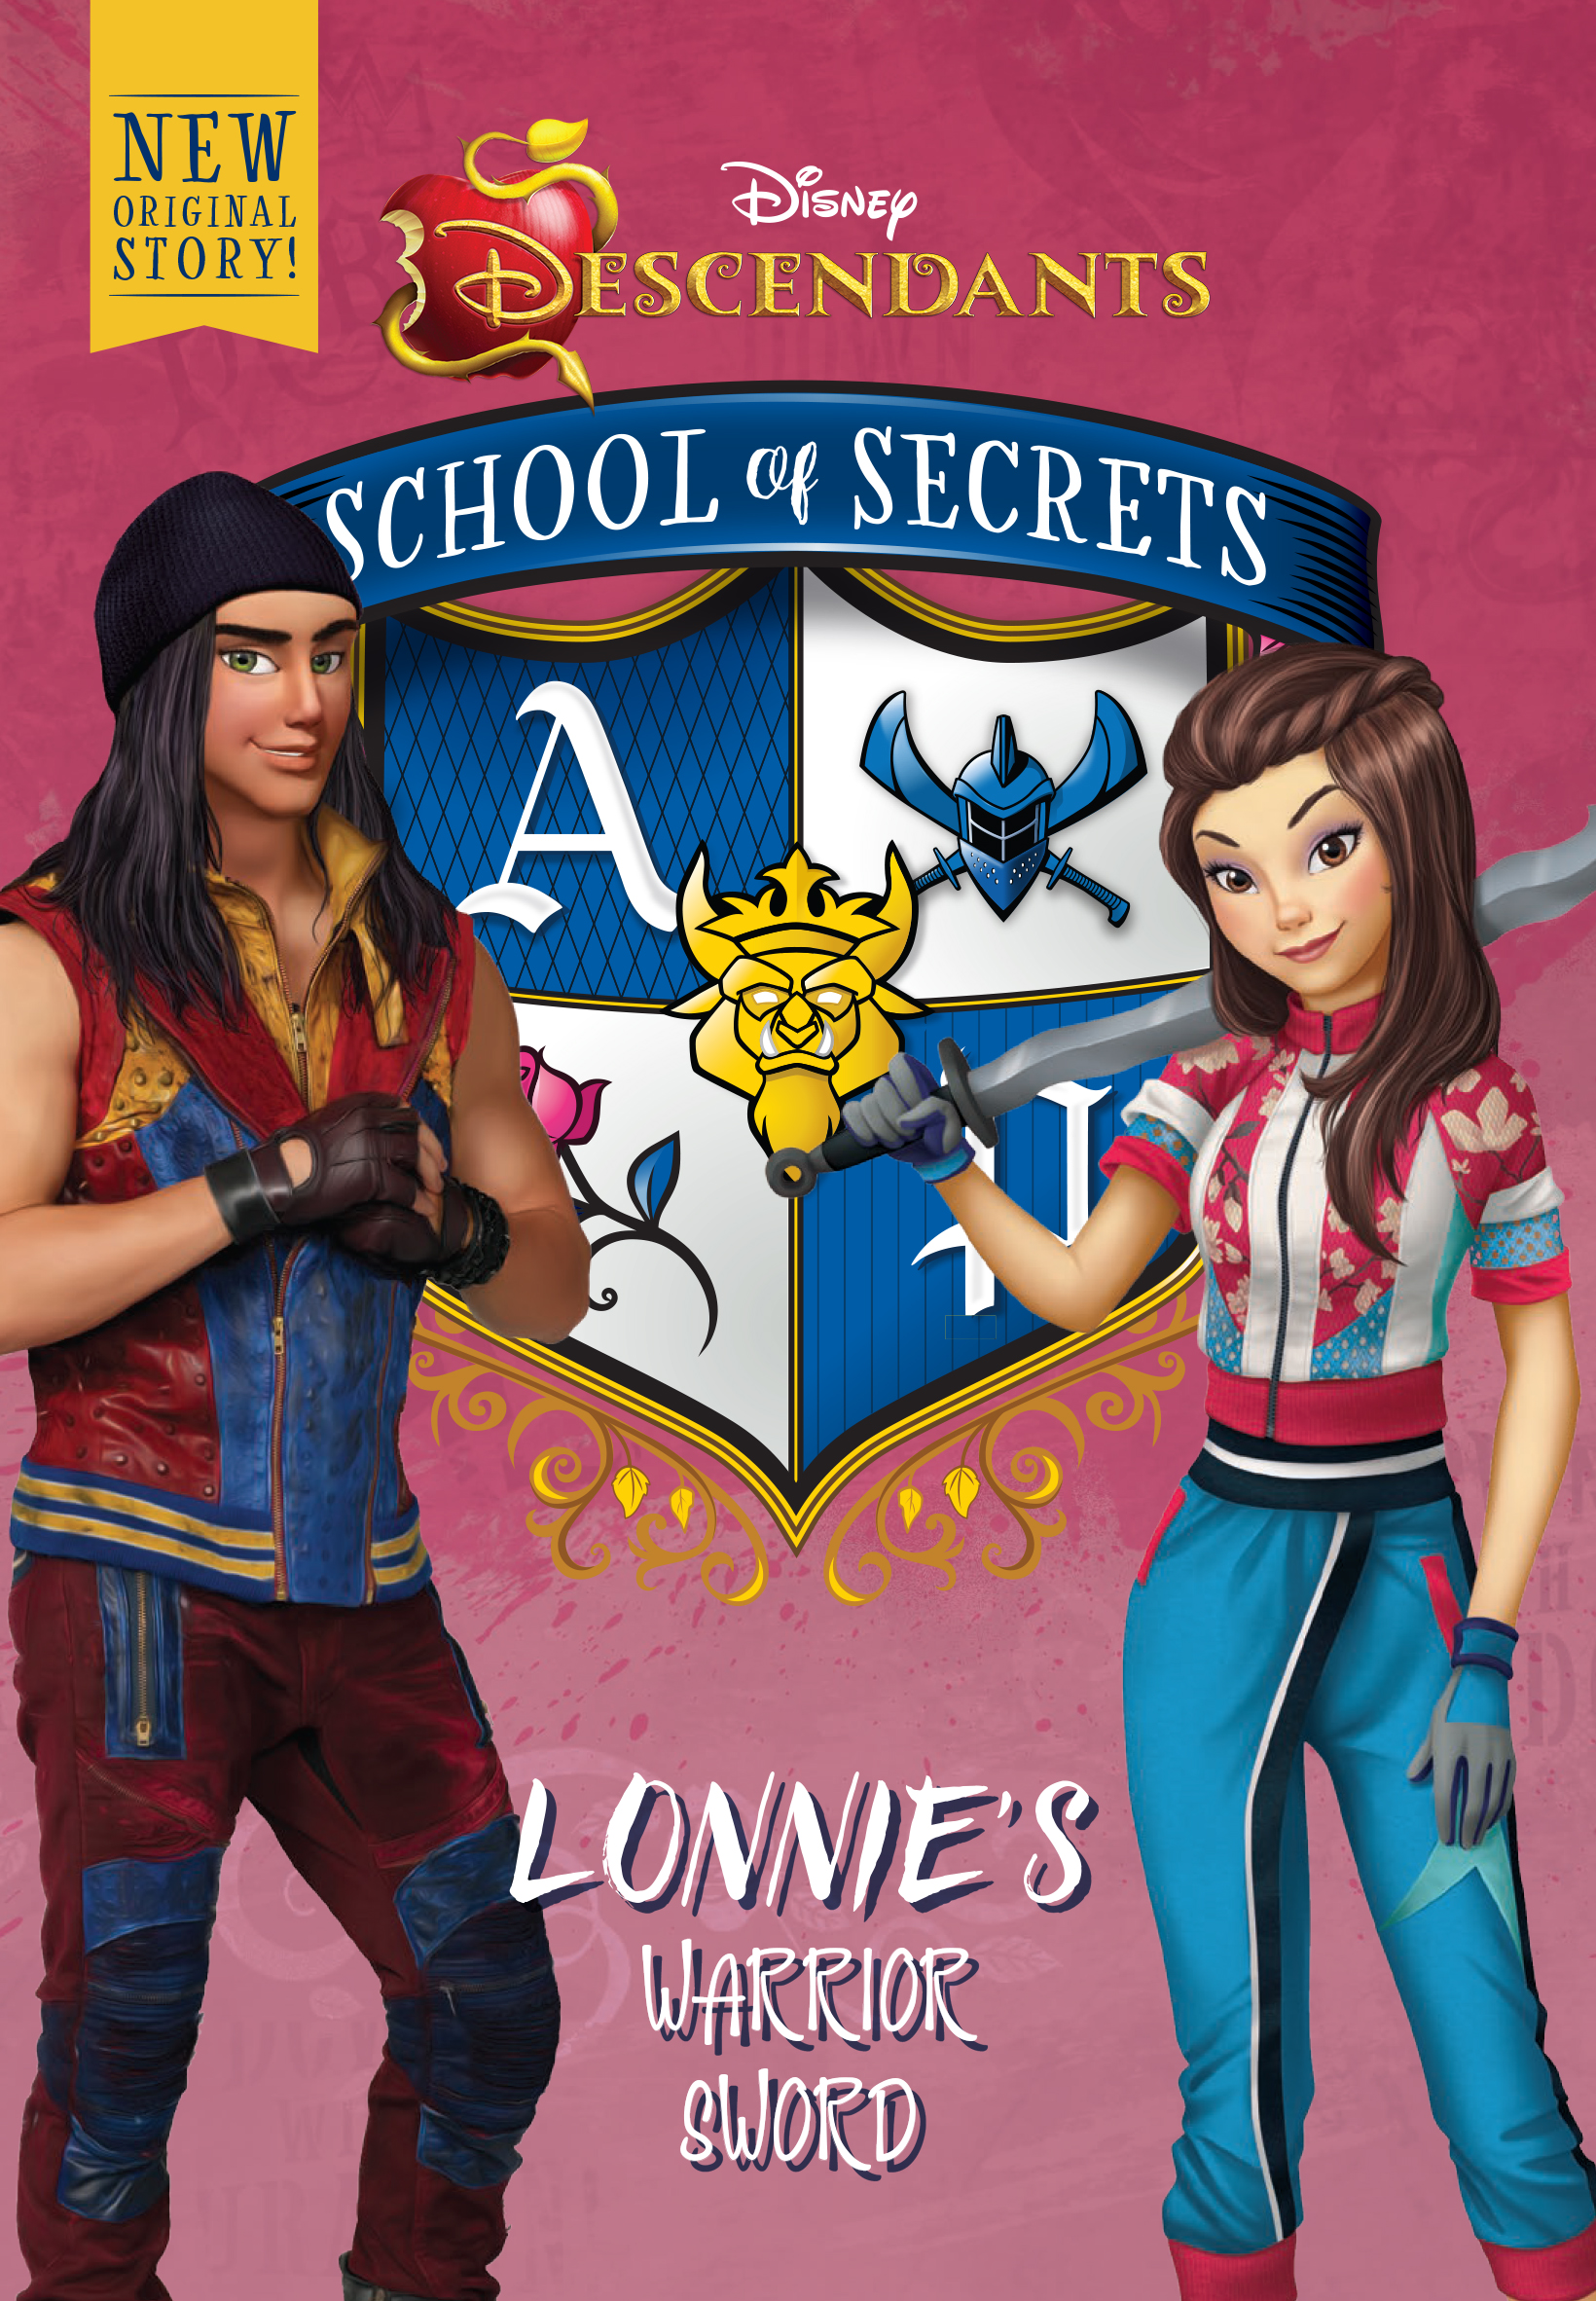 School of Secrets: Lonnie's Warrior Sword